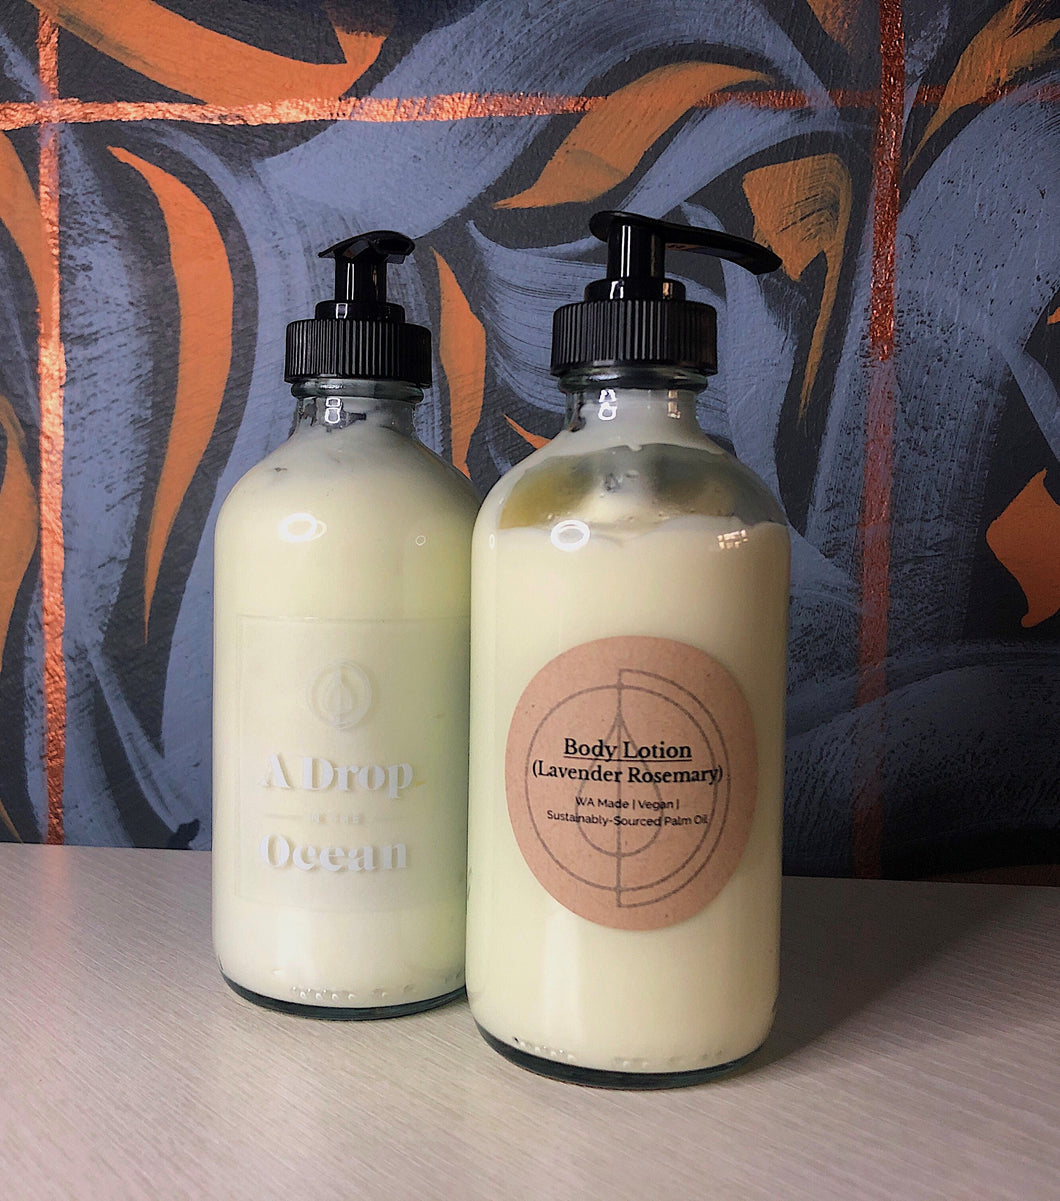 Body Lotion (Lavender Rosemary)